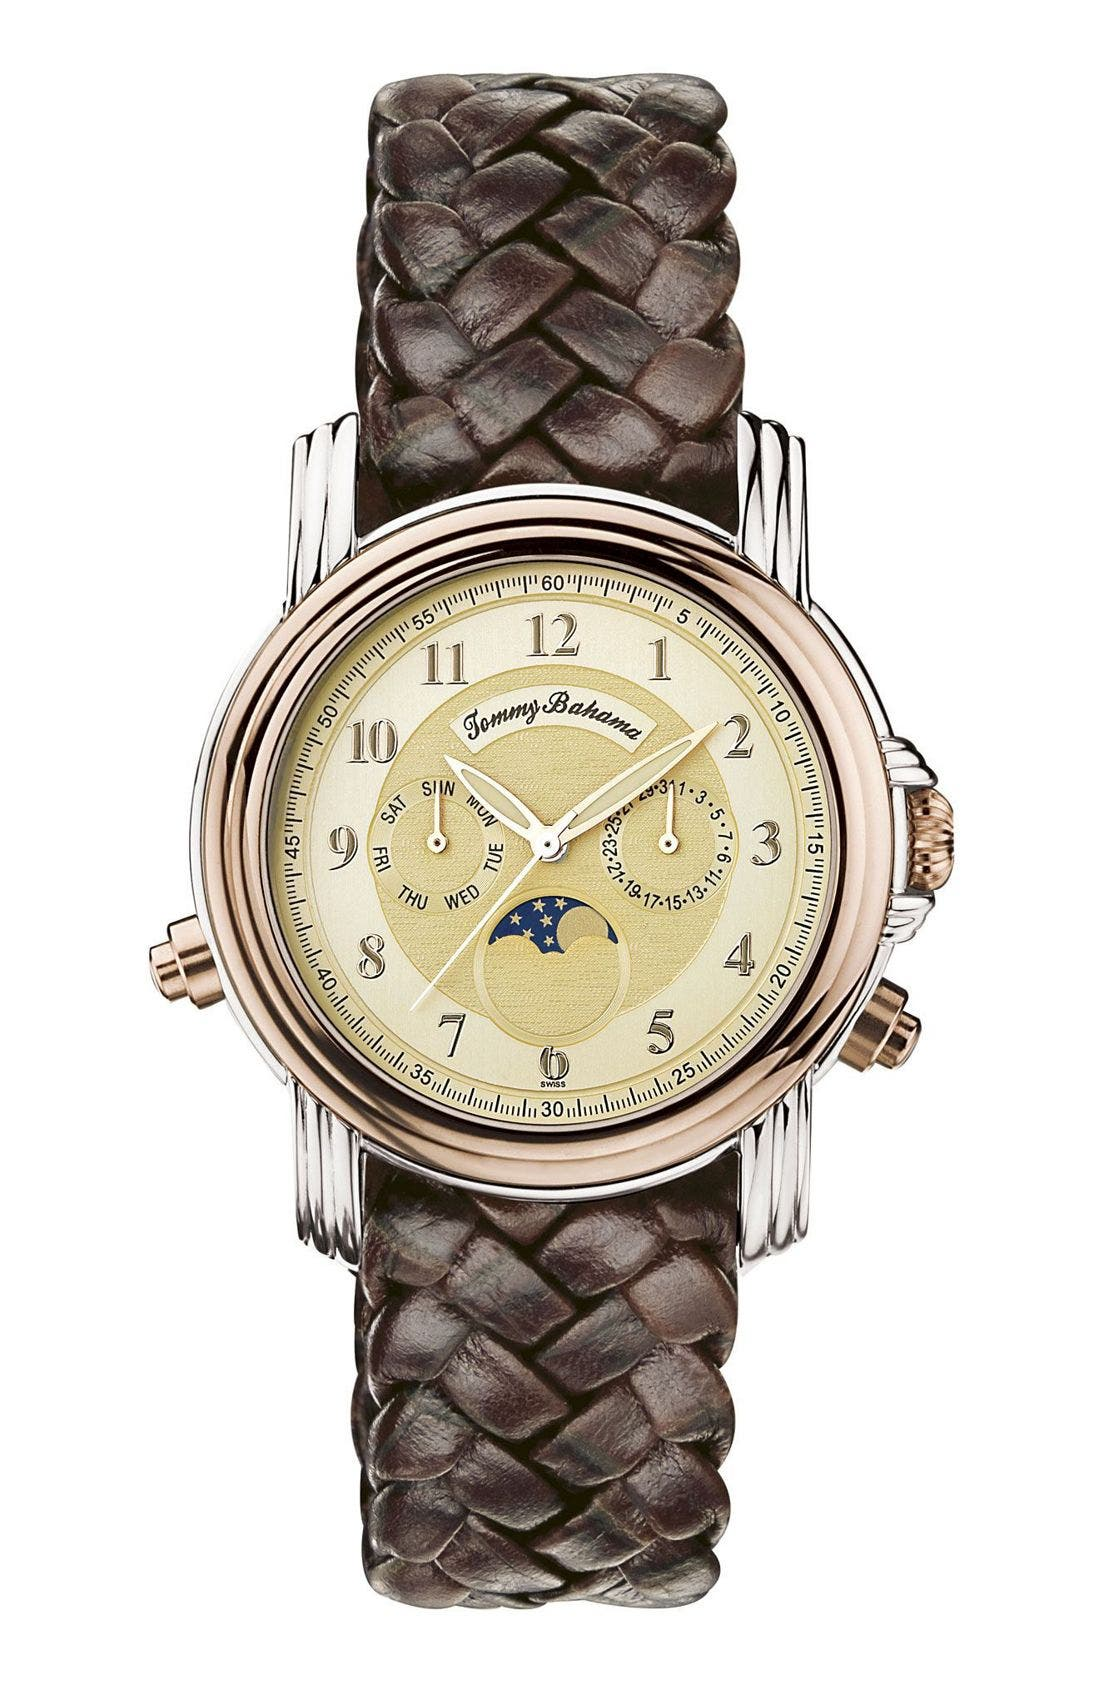 Alternate Image 1 Selected - Tommy Bahama Watches 'Steeling the Moon' Watch, 41mm